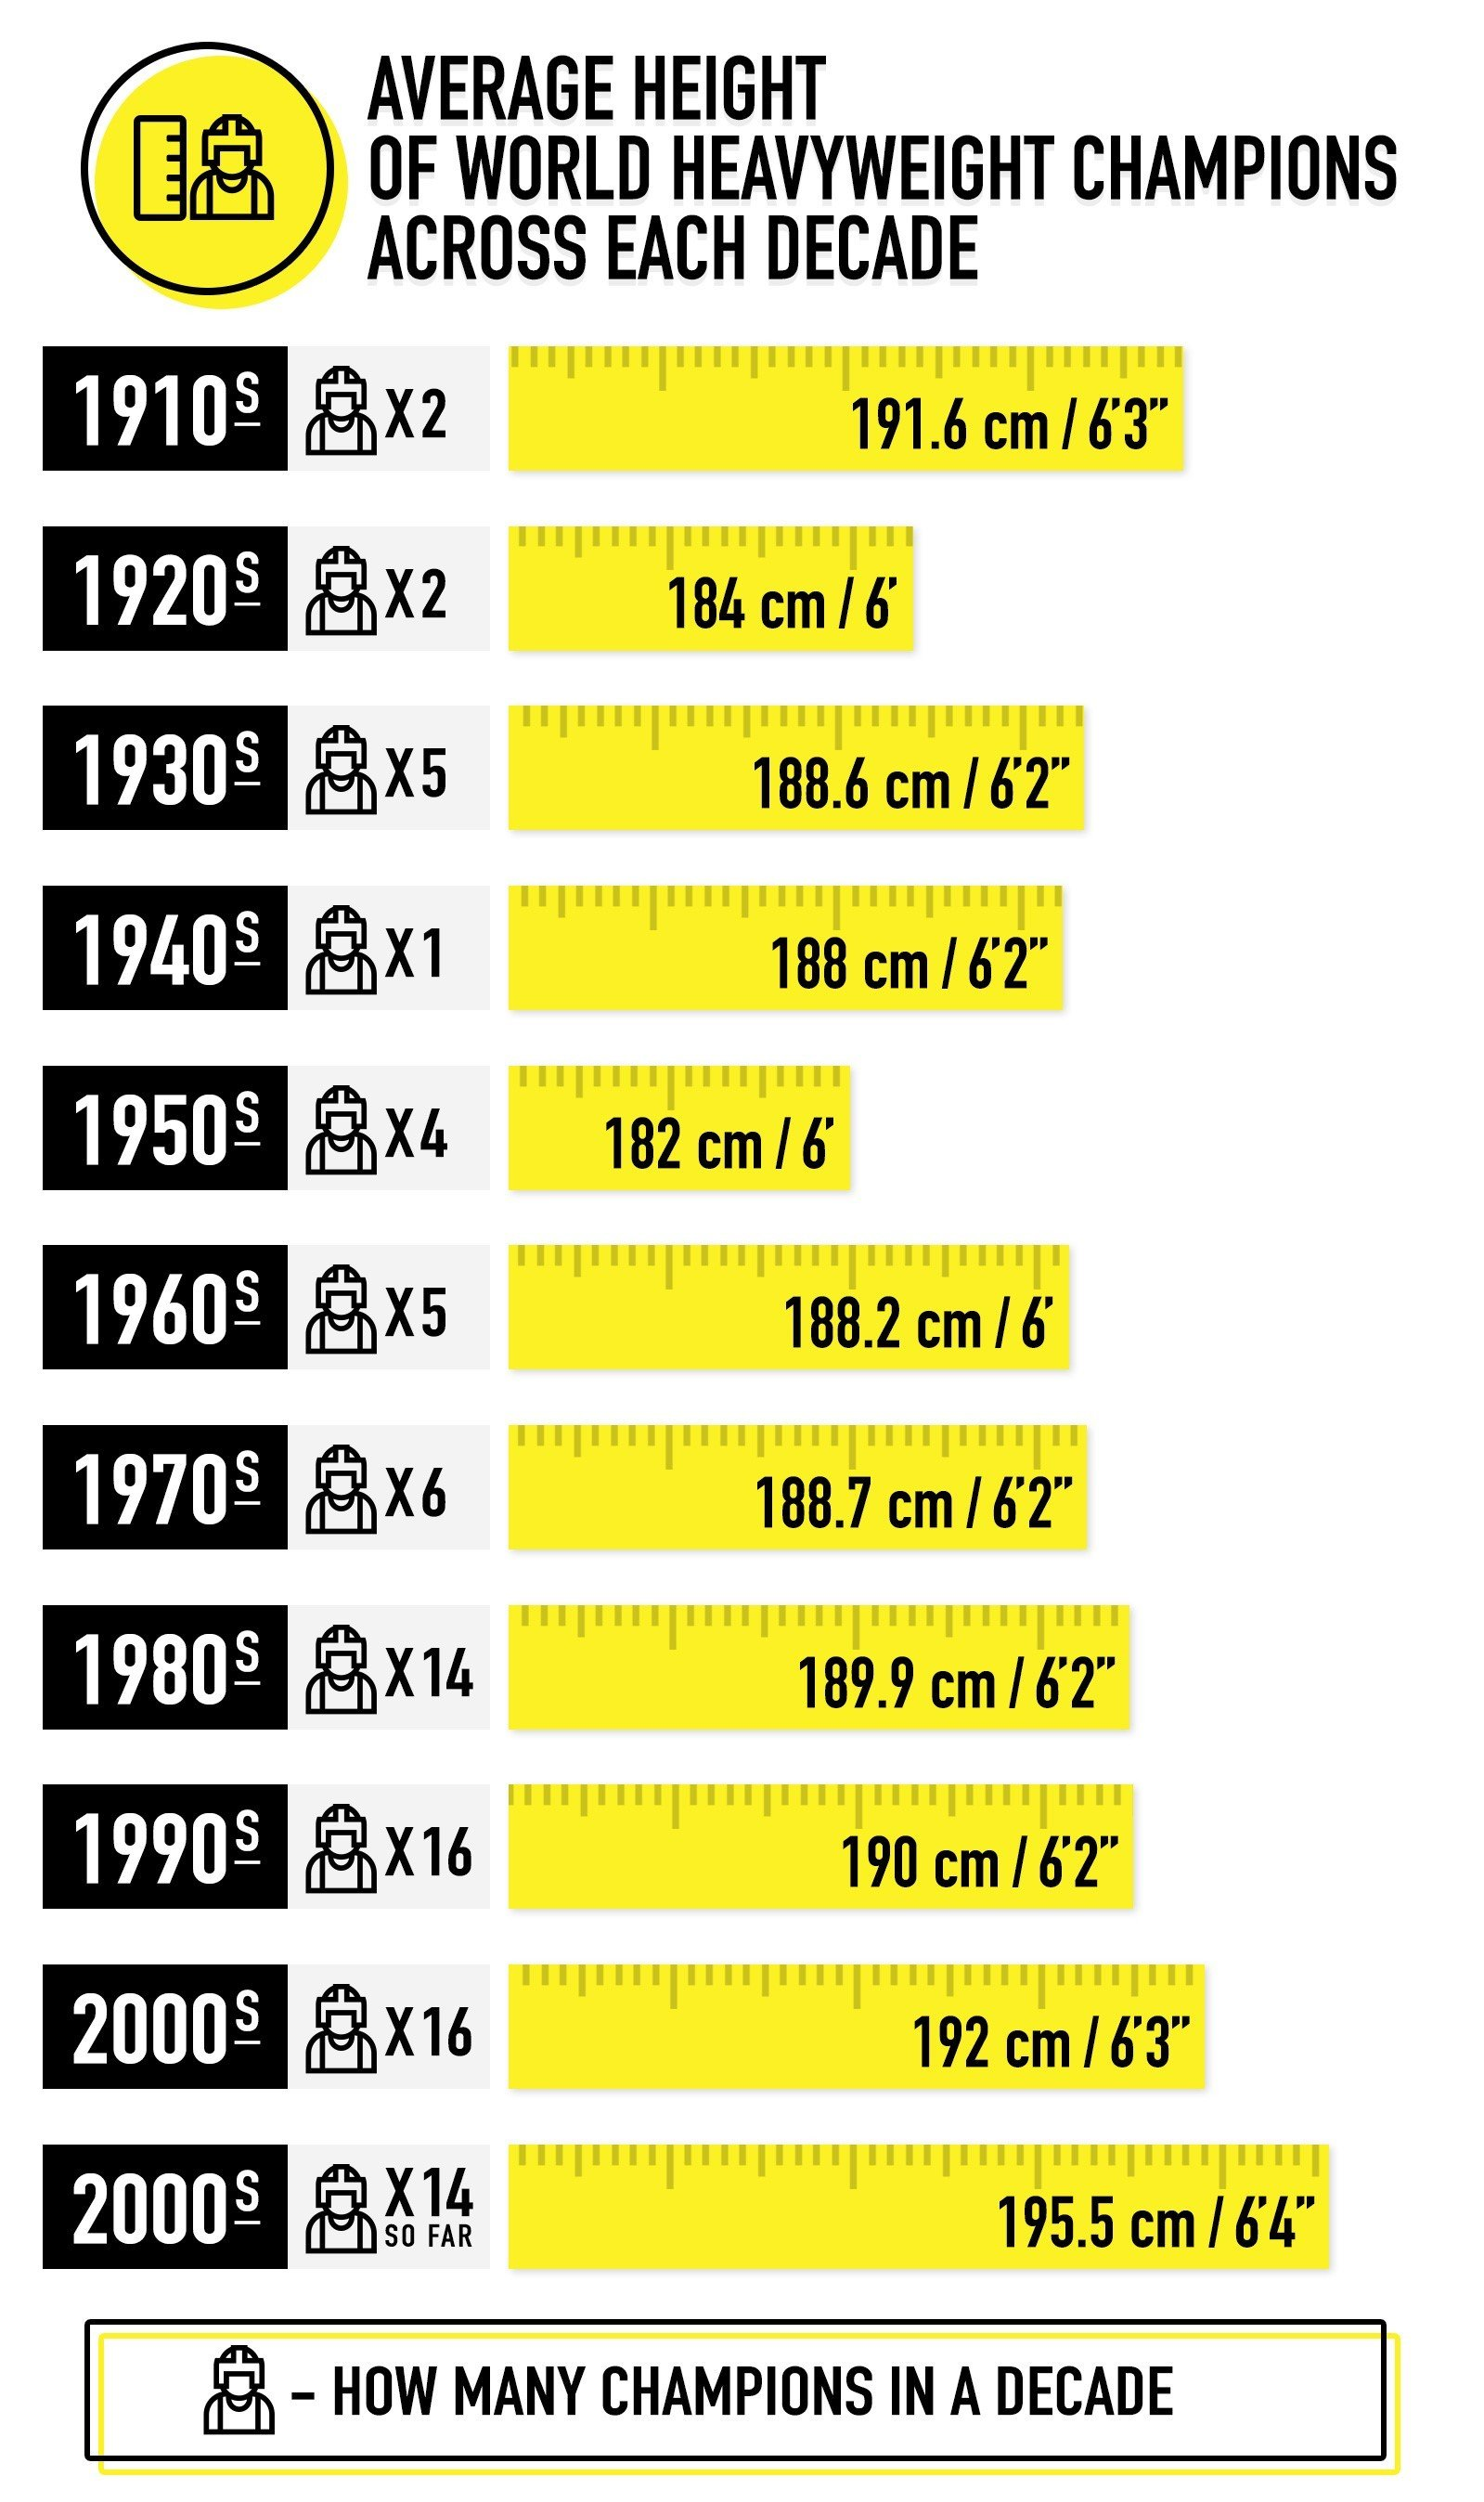 Average height of world heavyweight champions from 1910-present